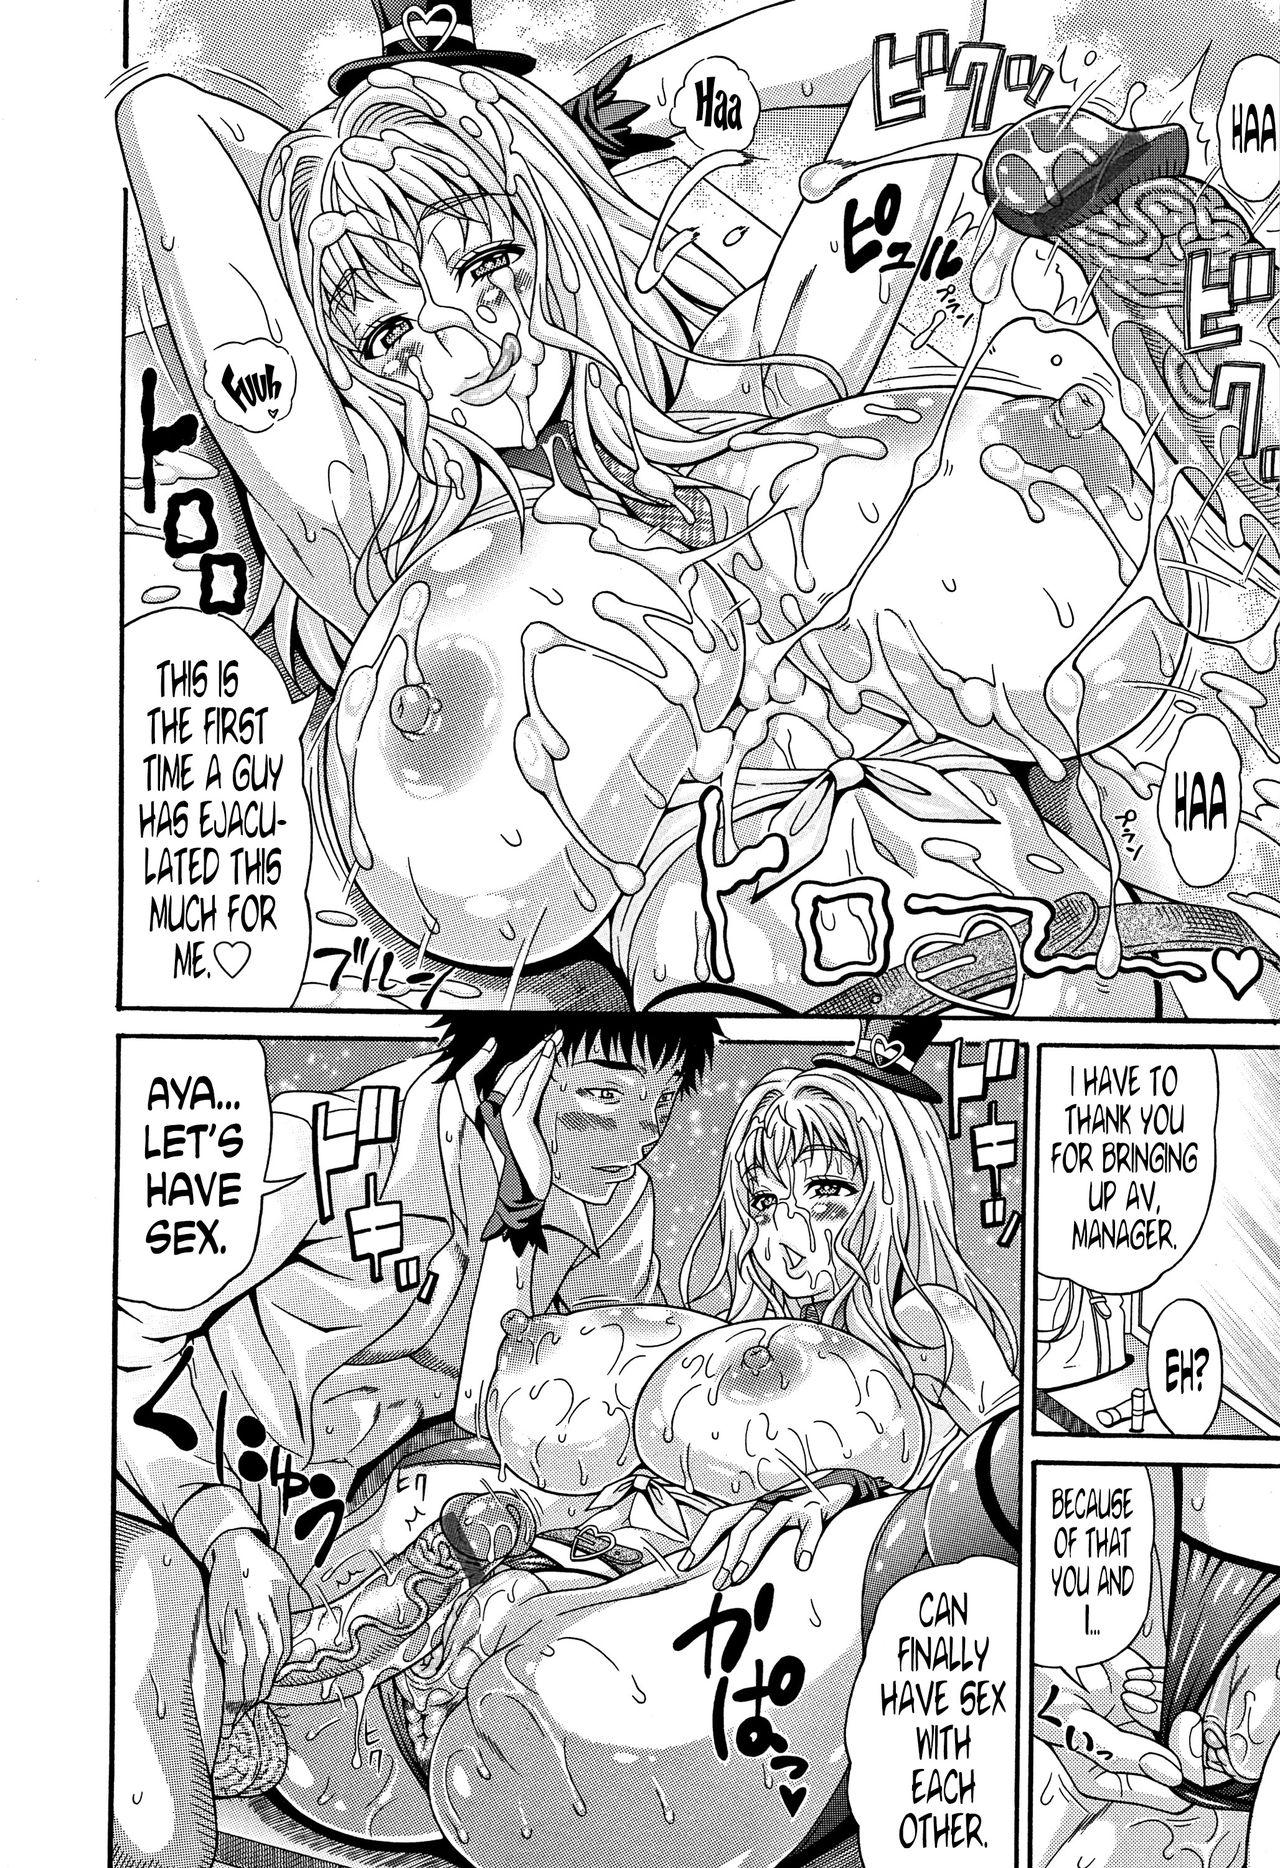 [Andou Hiroyuki] Mamire Chichi - Sticky Tits Feel Hot All Over. Ch.1-7 [English] [doujin-moe.us] 14